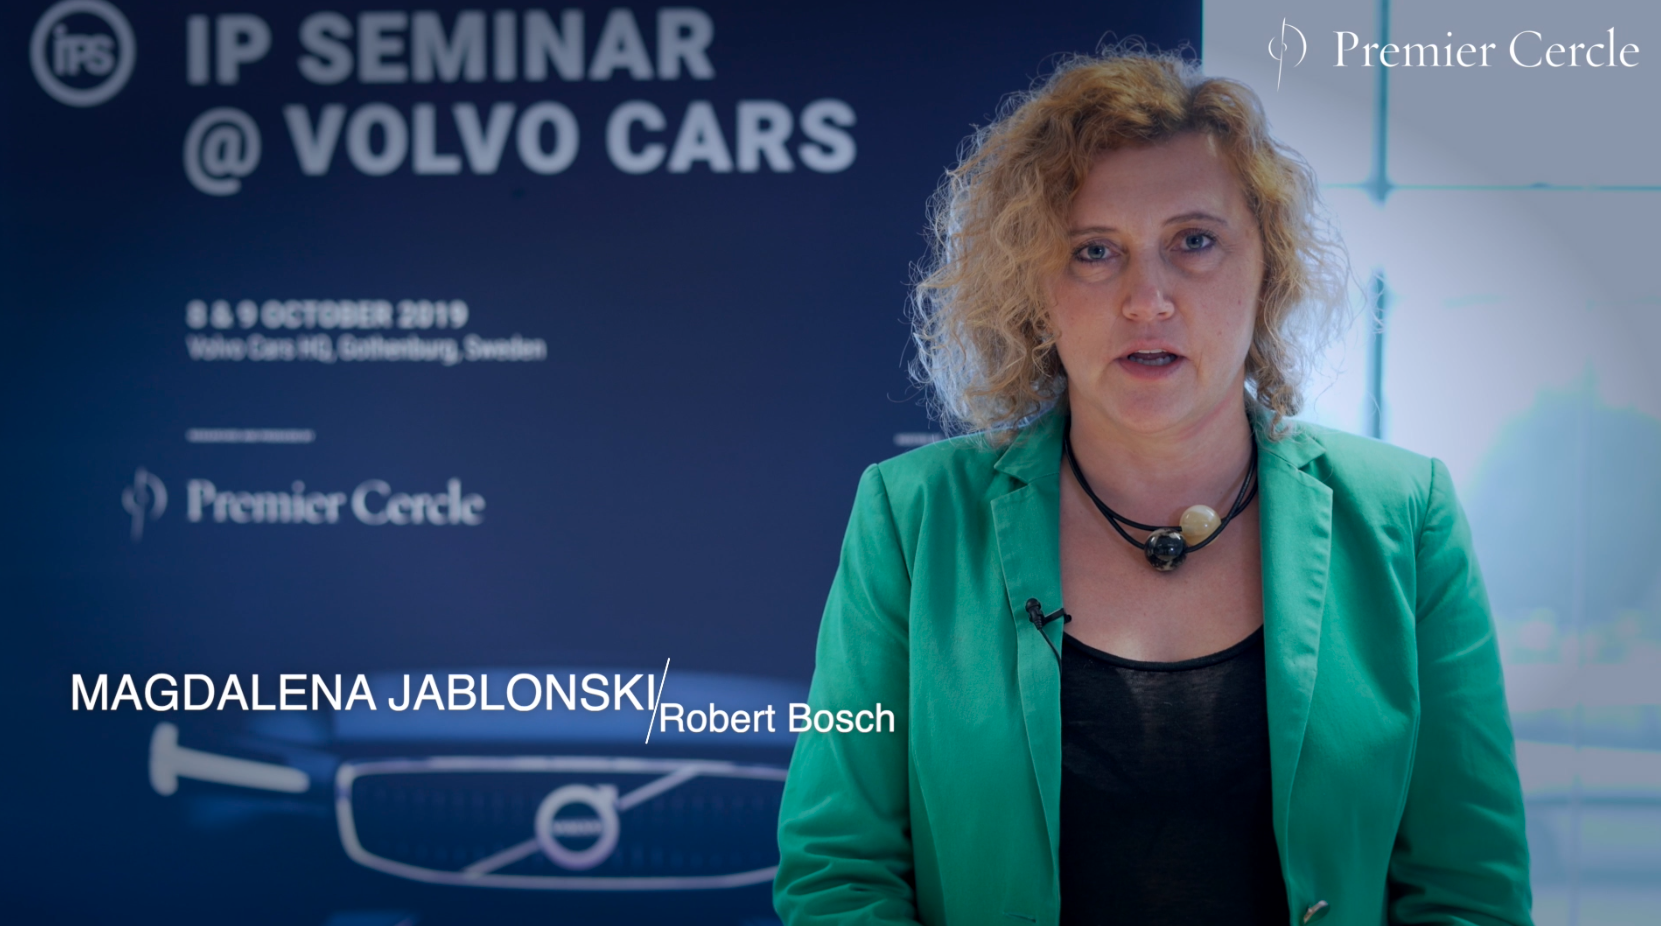 Magdalena Jablonski from Robert Bosch interviewed by Premier Cercle